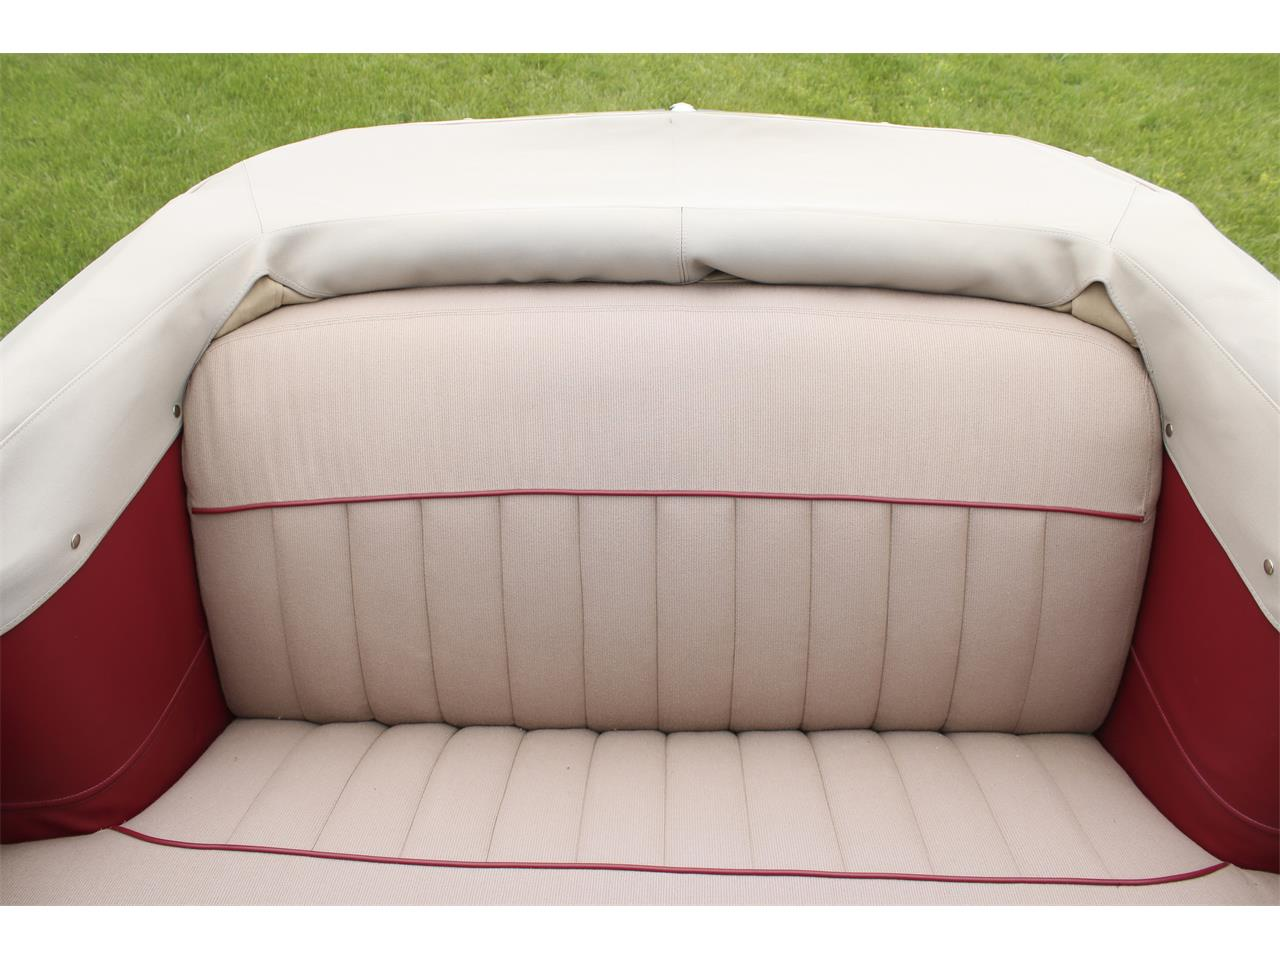 Large Picture of '48 Convertible located in Alpena Michigan Offered by a Private Seller - QJJ6